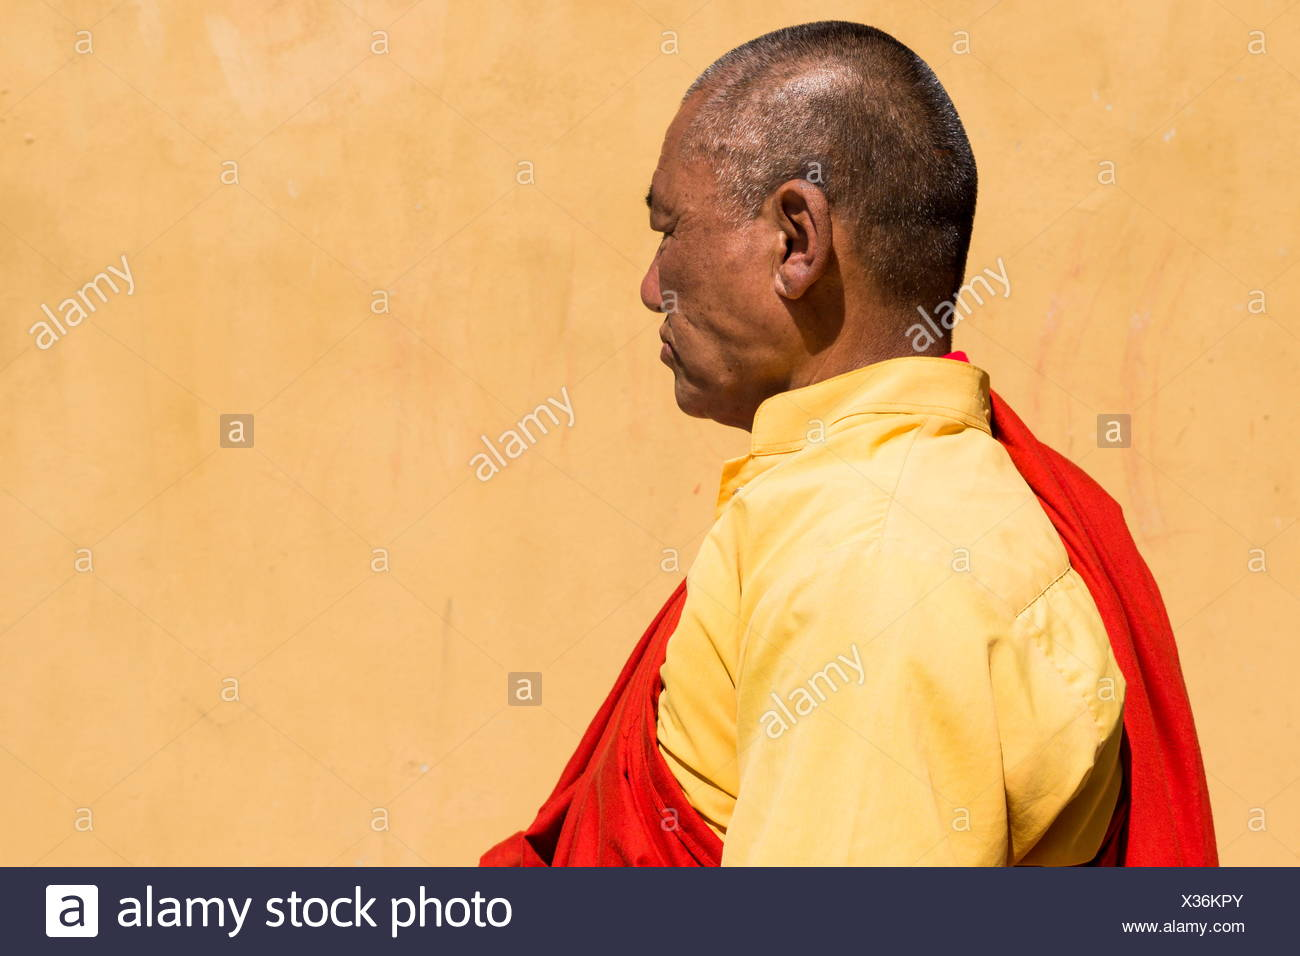 Profile shot of a monk in Bhutan. - Stock Image